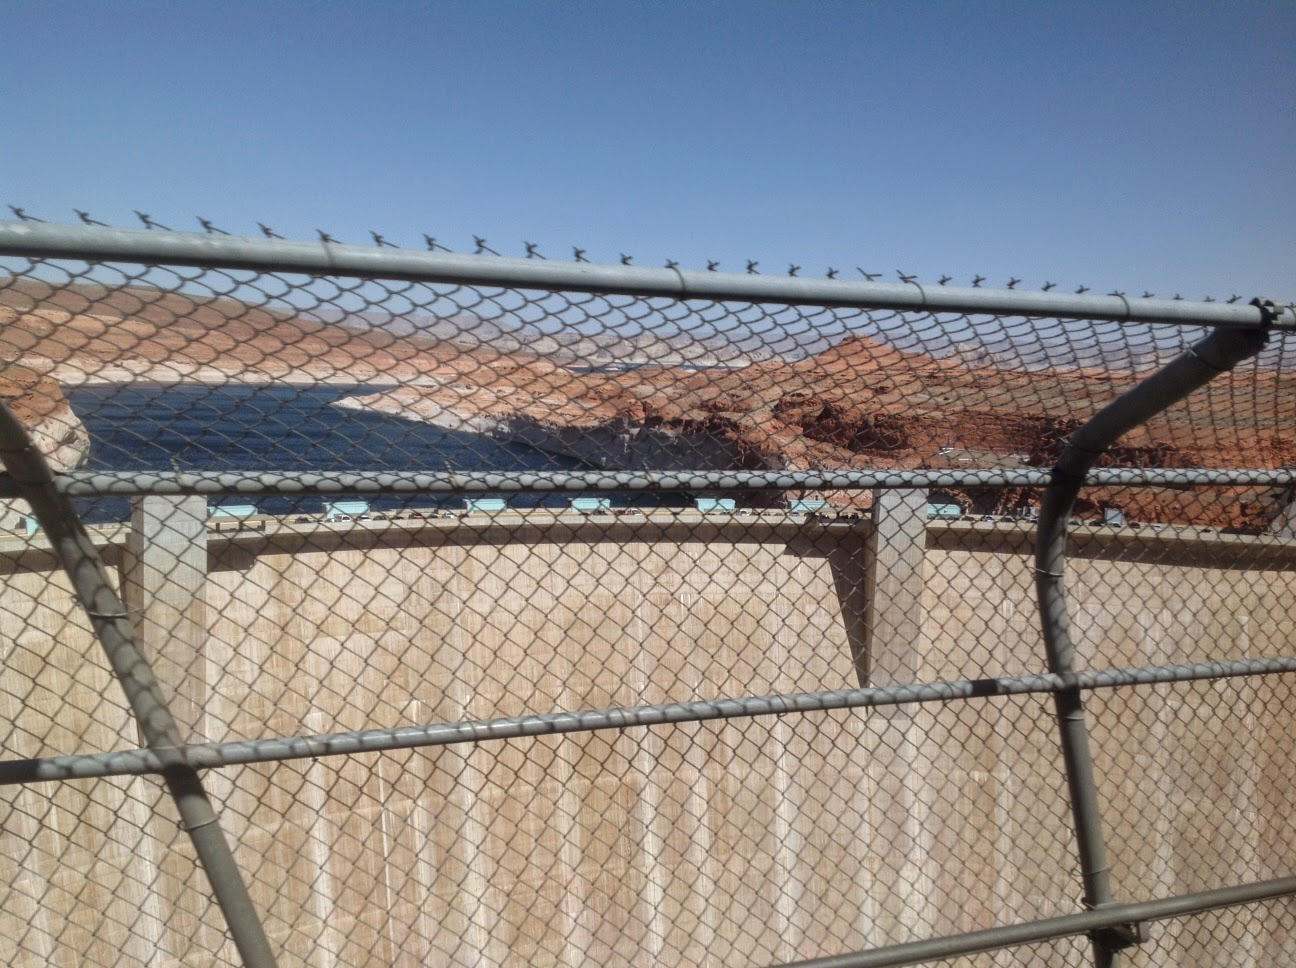 Picture of Glen Canyon Dam taken from adjacent bridge